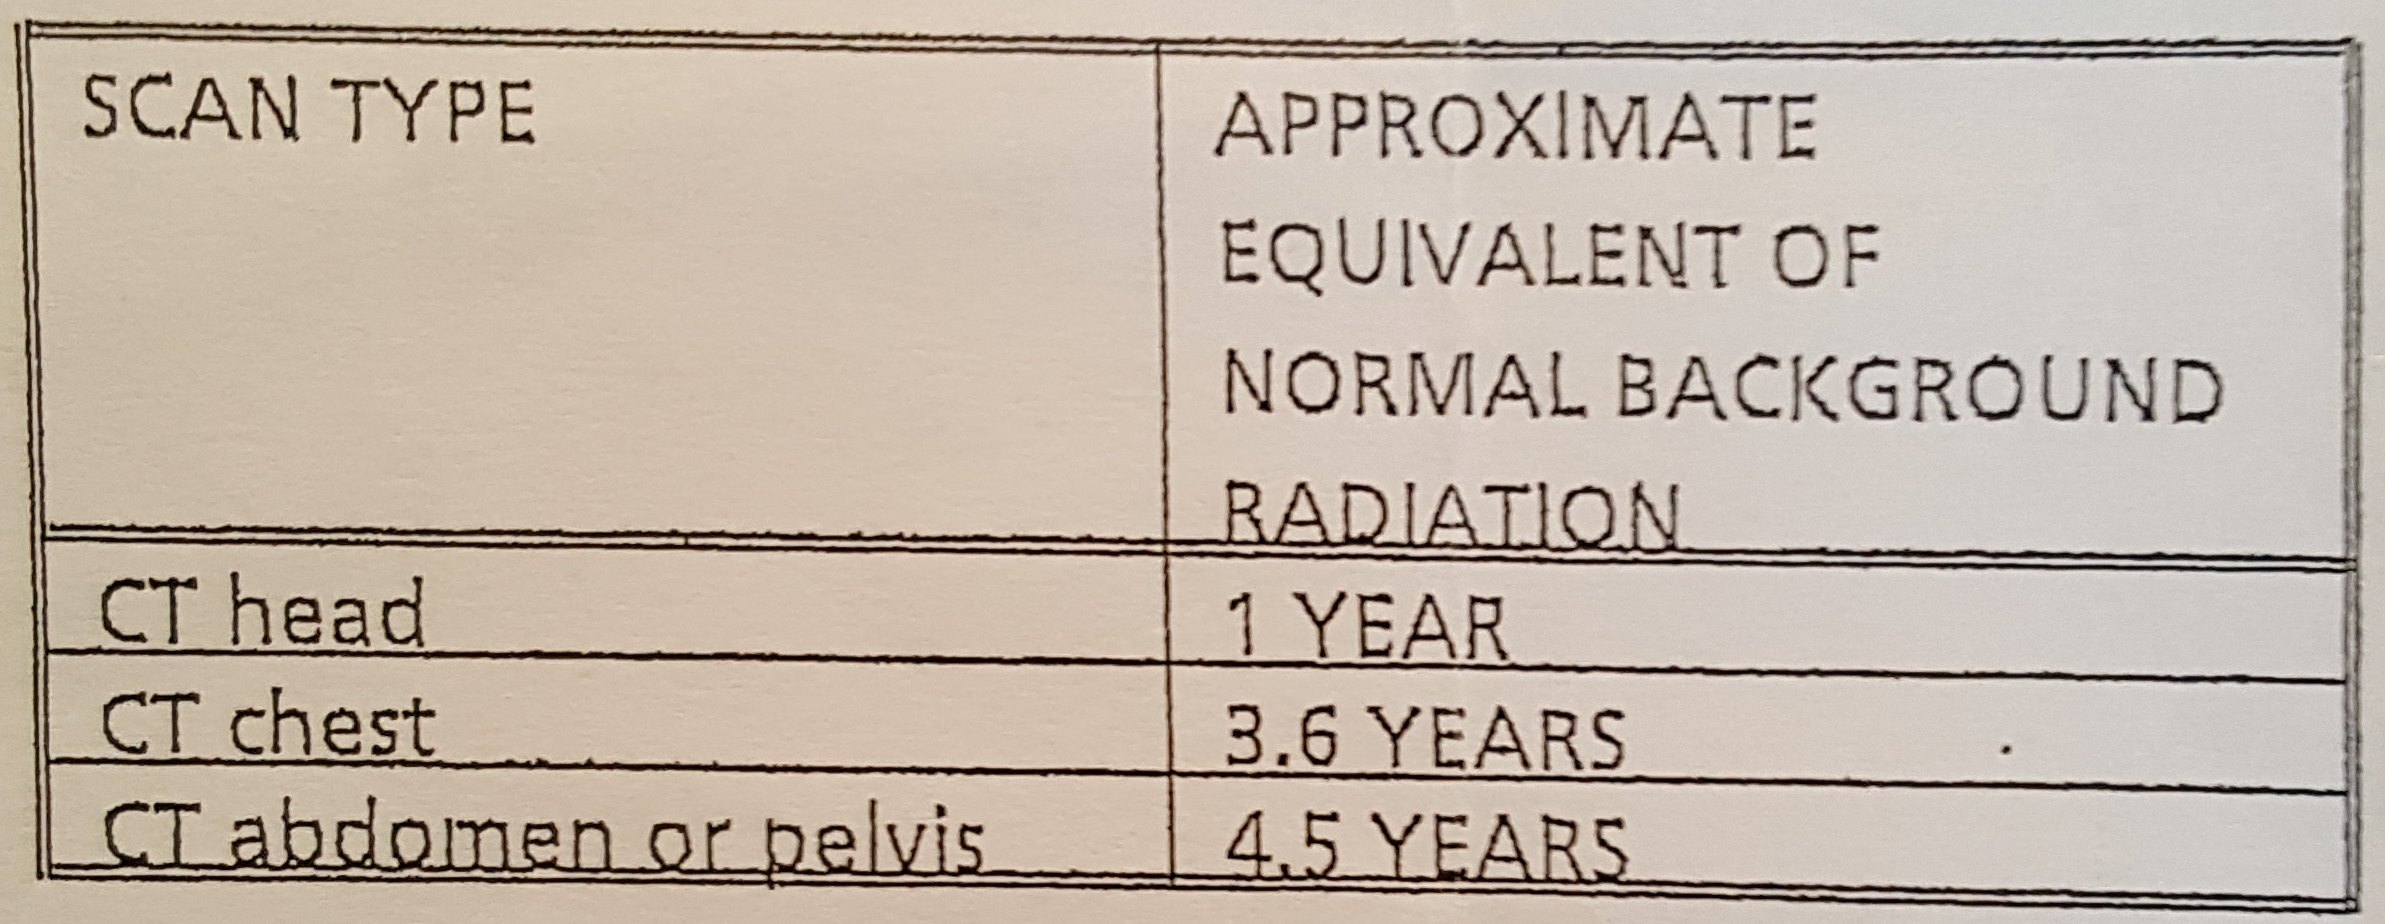 The approximate radiation doses from the various types of CT Scan